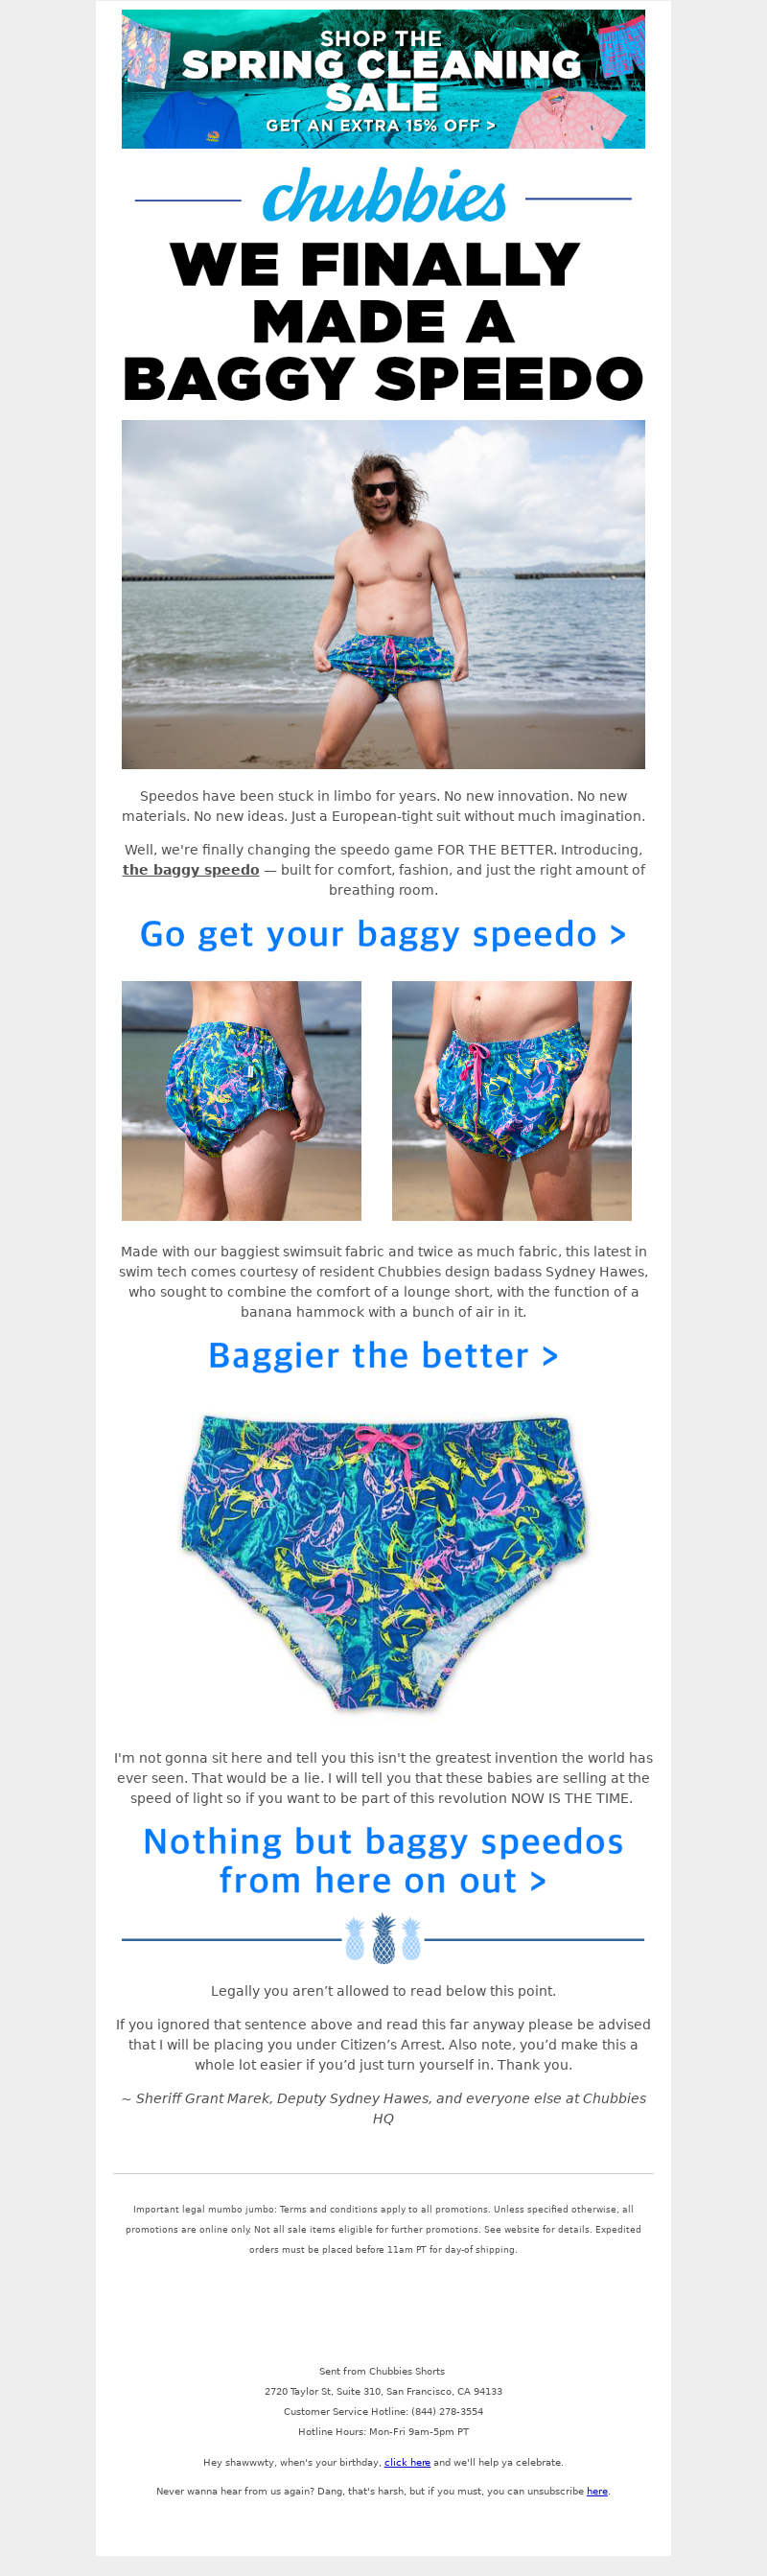 yooooooooo download images muchacho Speedos have been stuck in limbo for ye